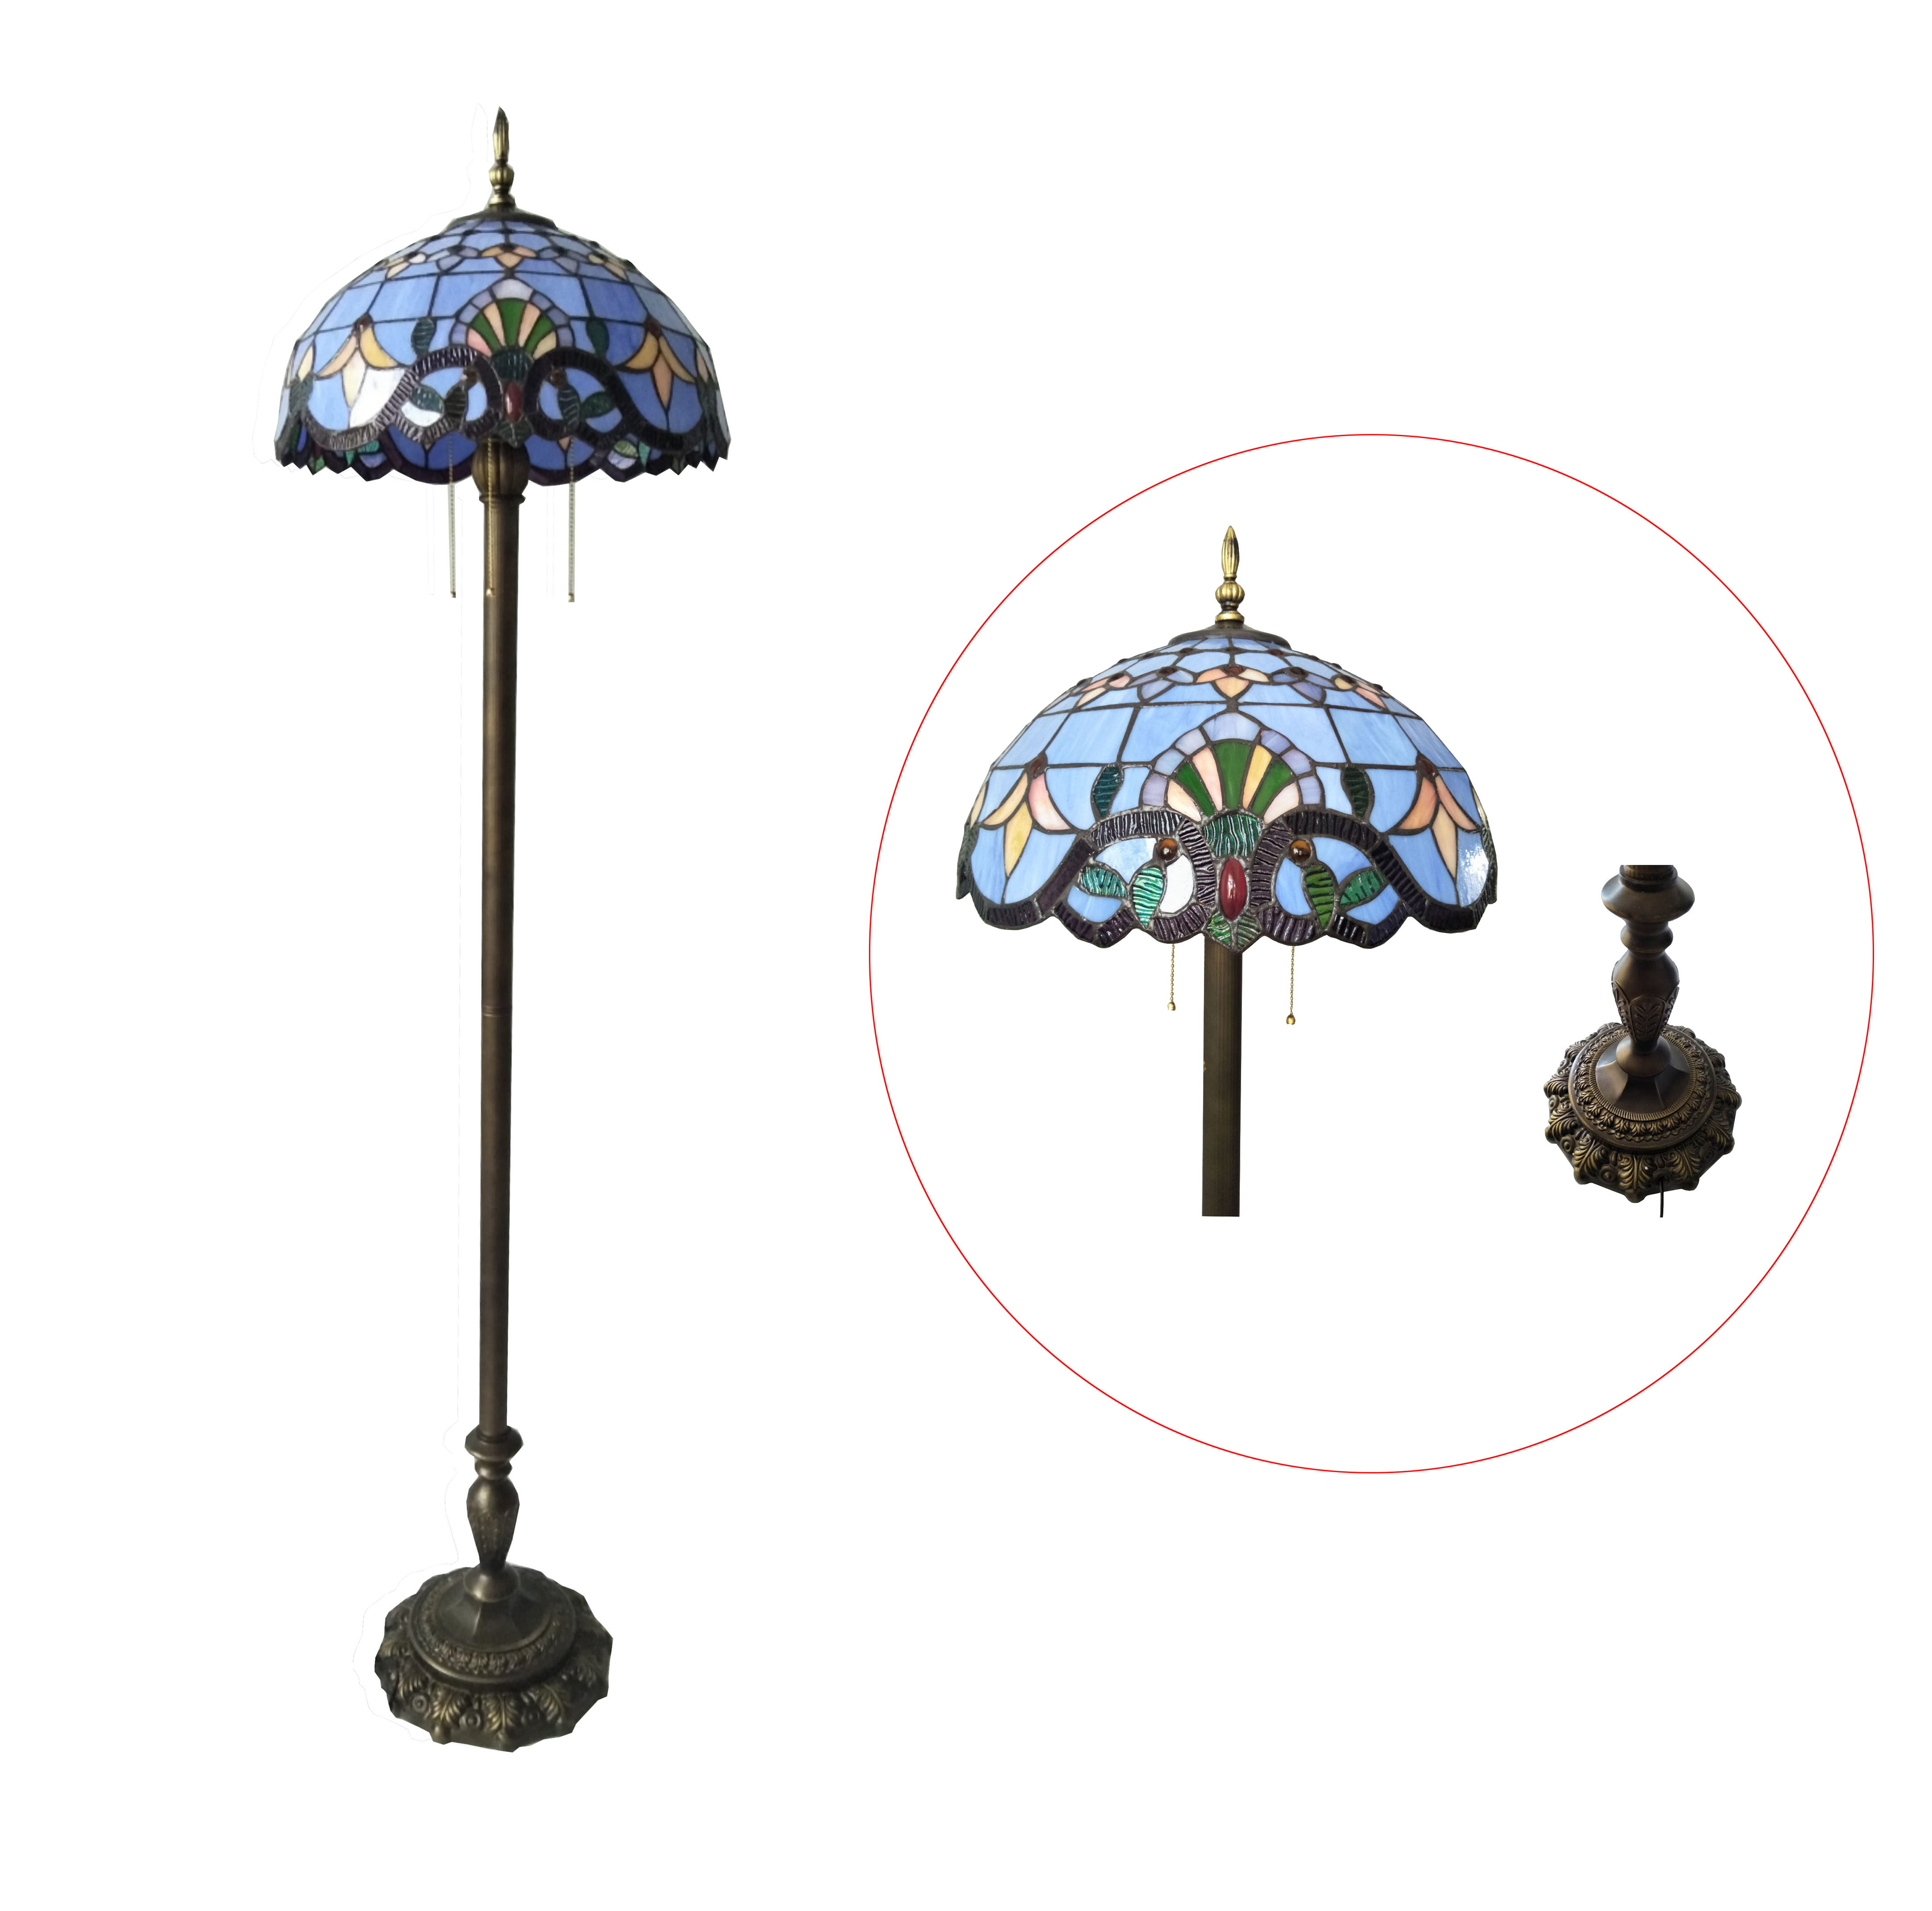 Tiffany floor lamp tiffany livingroom lamp stained glass shade image is loading tiffany floor lamp tiffany livingroom lamp stained glass aloadofball Image collections